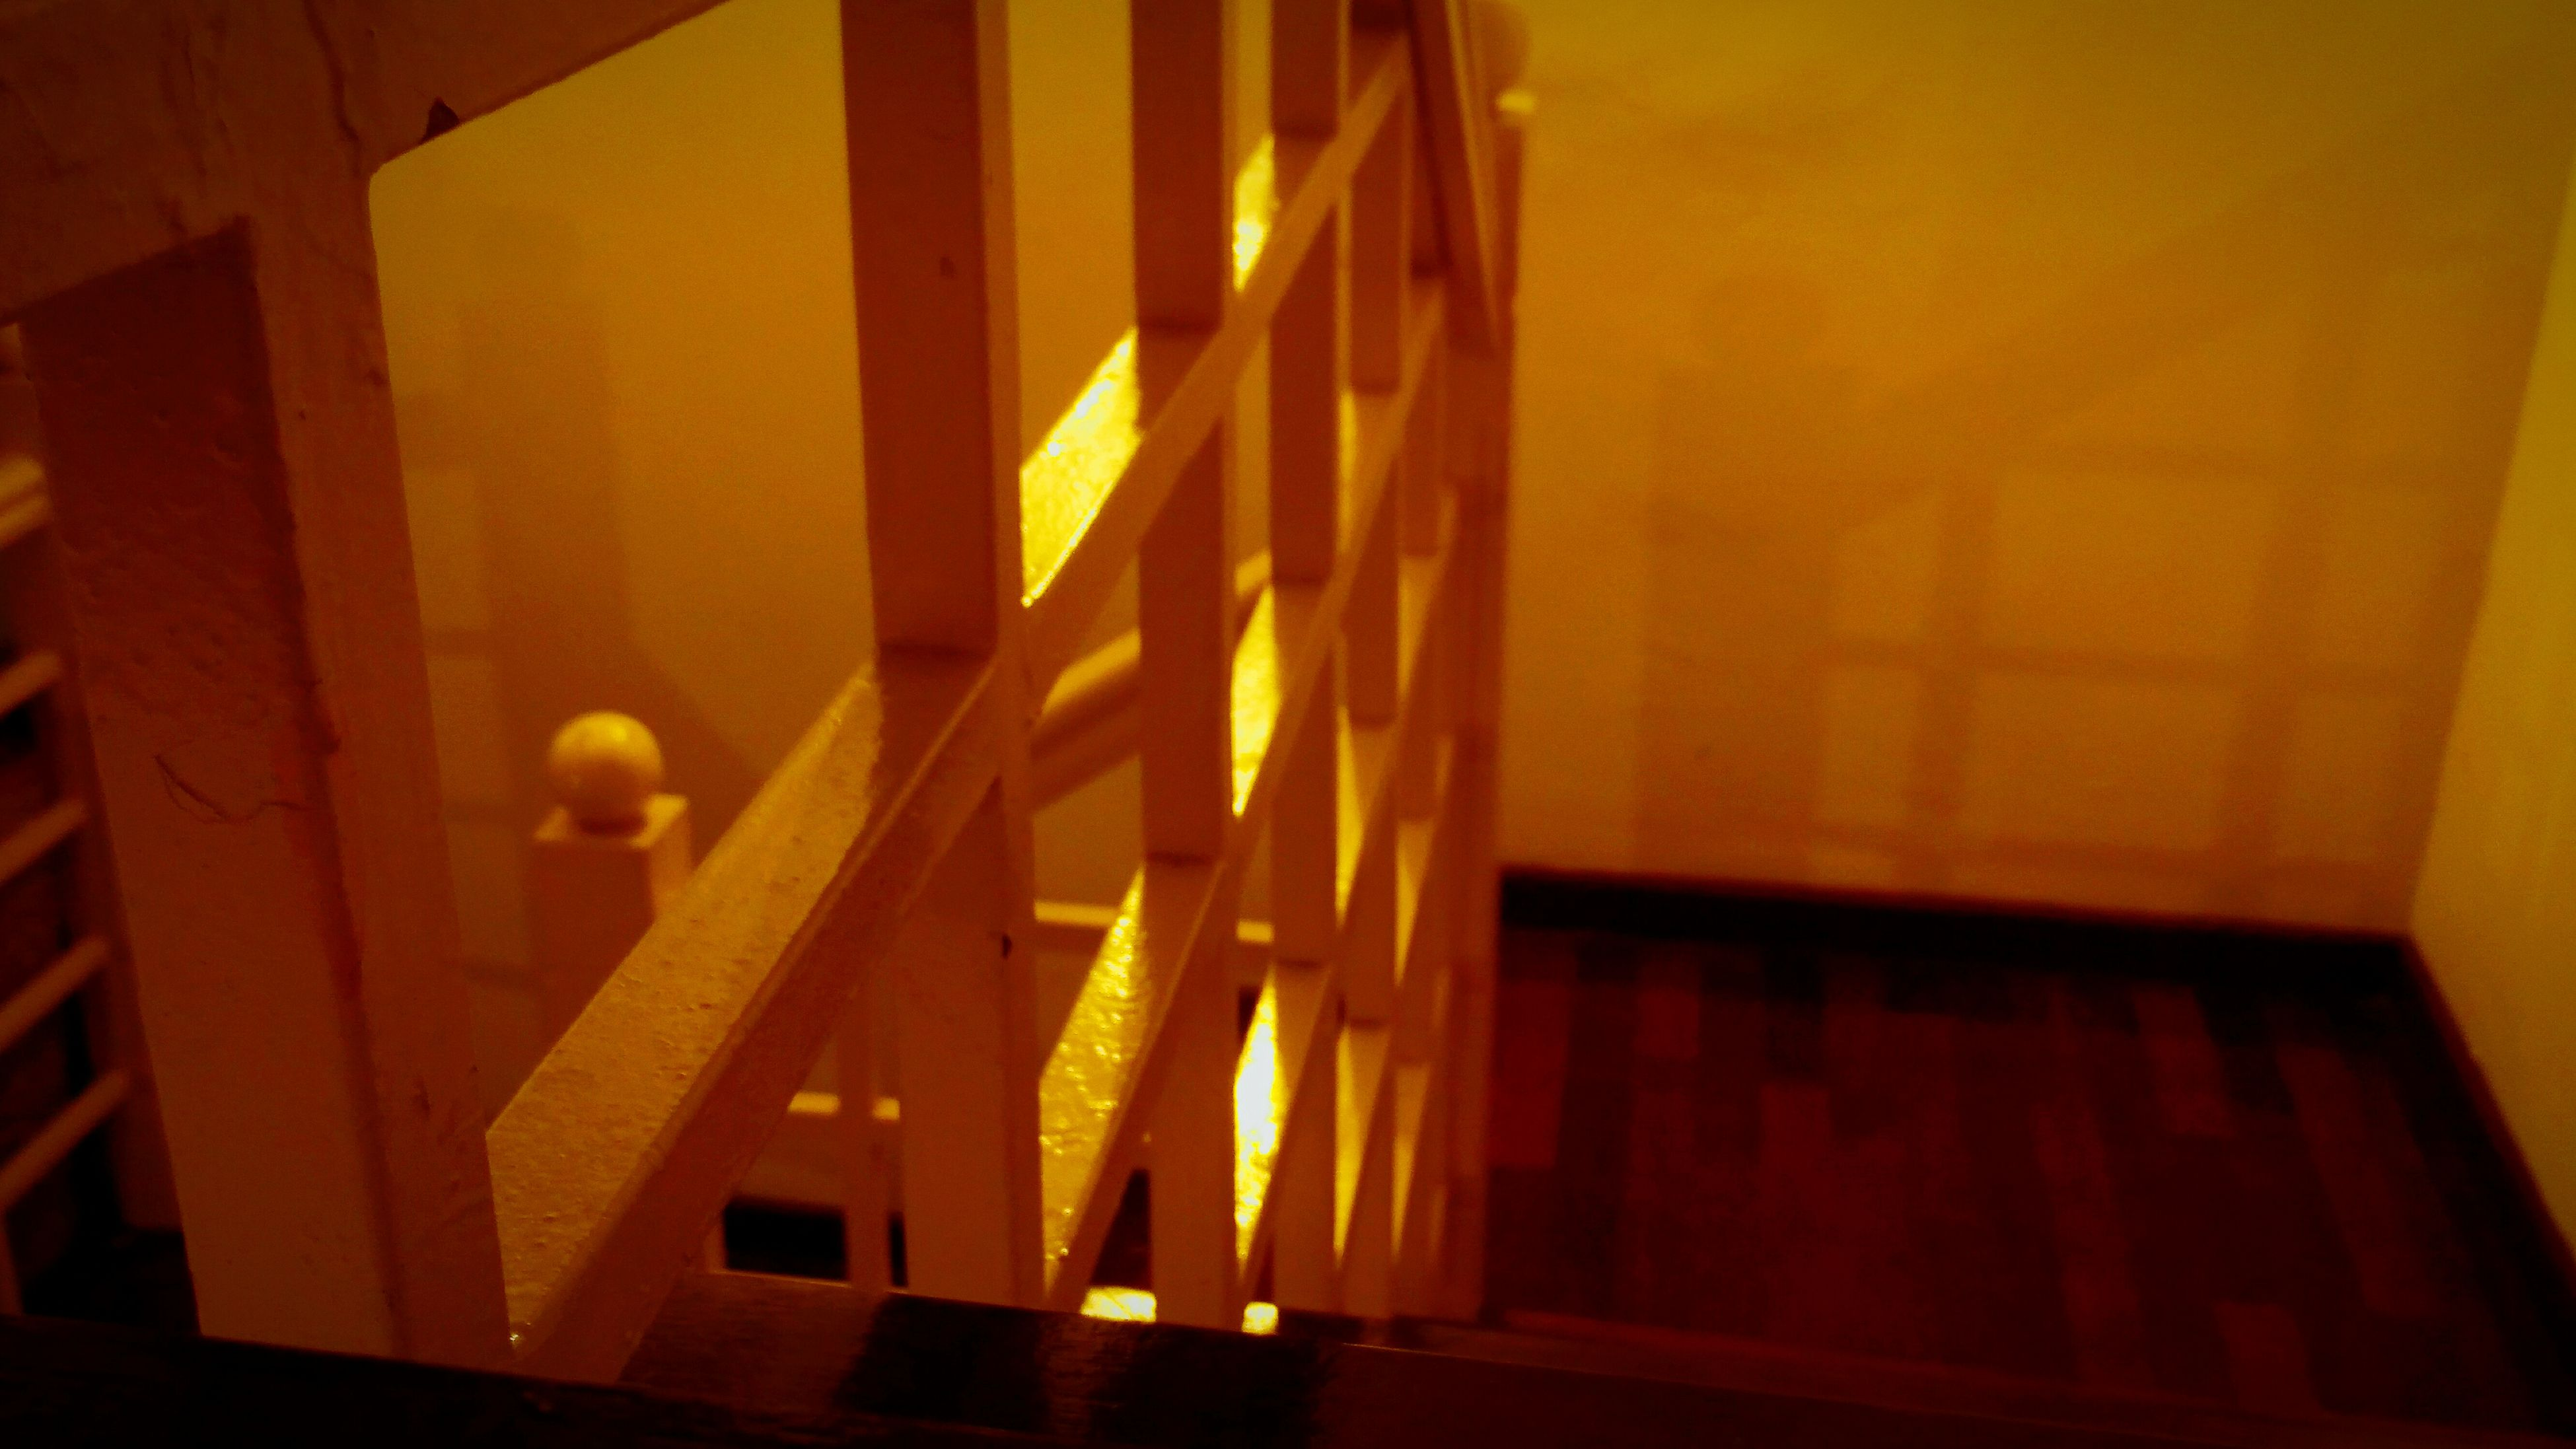 indoors, no people, home interior, yellow, close-up, illuminated, built structure, architecture, day